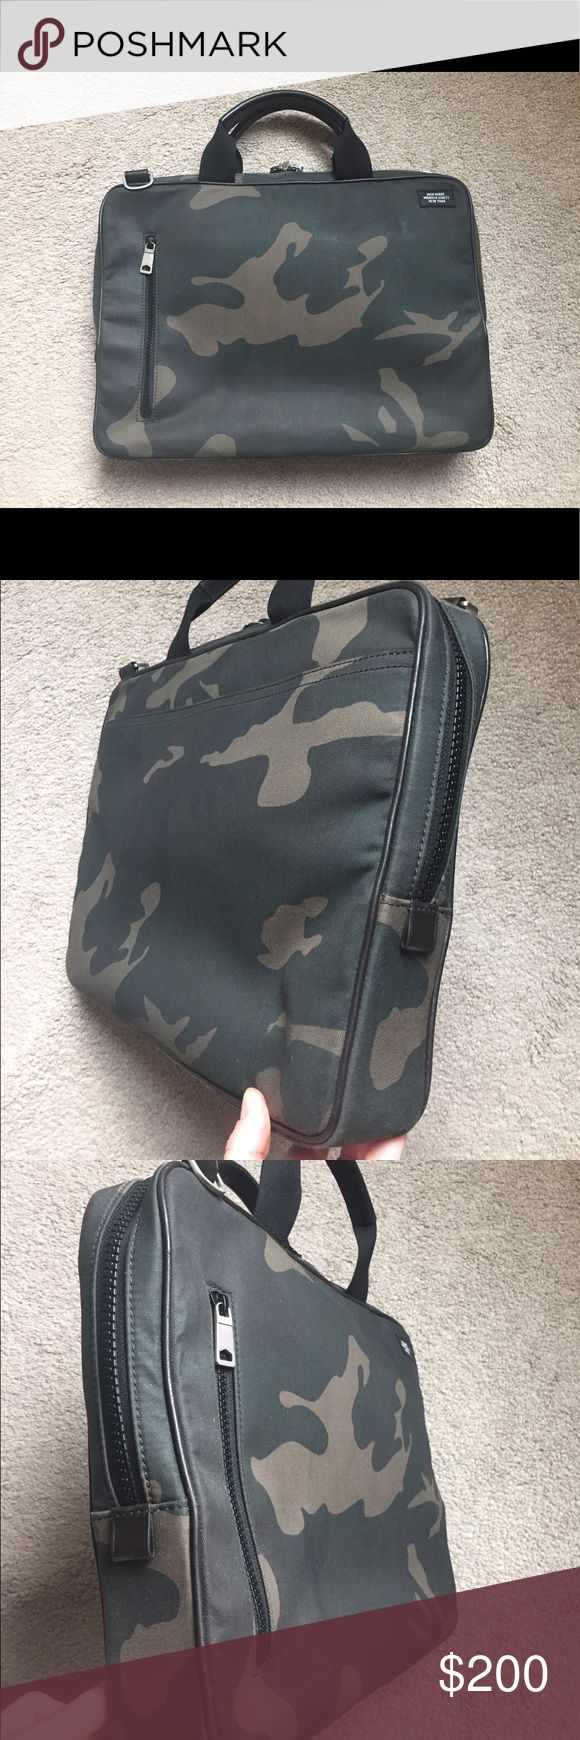 Jack Spade Camo Soft Briefcase Perfect condition Jack Spade Camo Briefcase. No issues with it. In perfect condition. Comes with dust cover bag (not pictured). Will fit laptops 13 and 15 inches. 3 inches deep. Slim style. Should strap (pictured) also included. Also listed on eBay...once it's gone, it's gone! Jack Spade Bags Briefcases